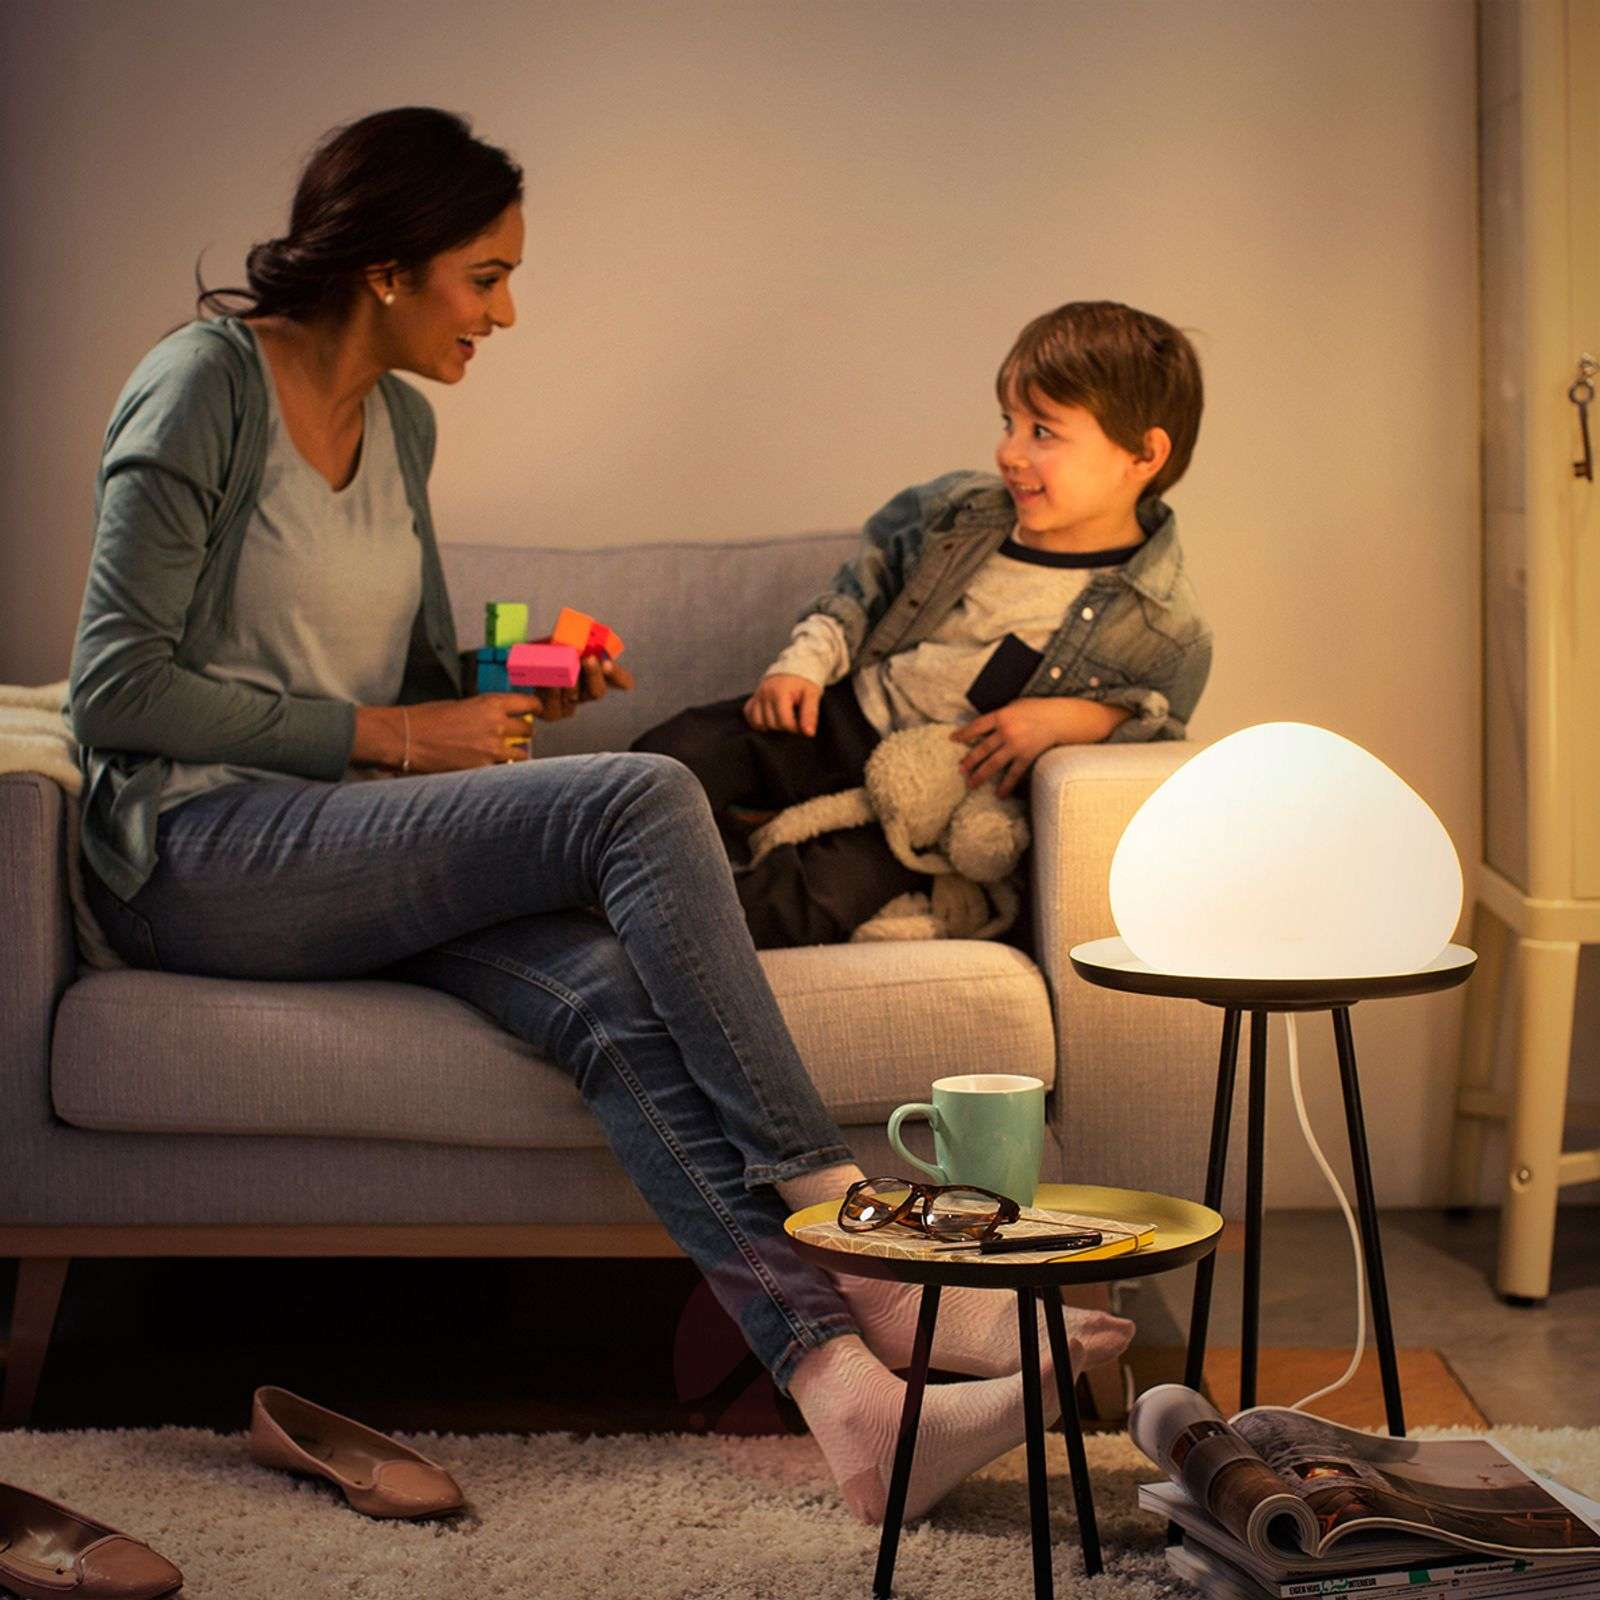 Lampe à poser LED Philips Hue réglable Wellner-7531876-01